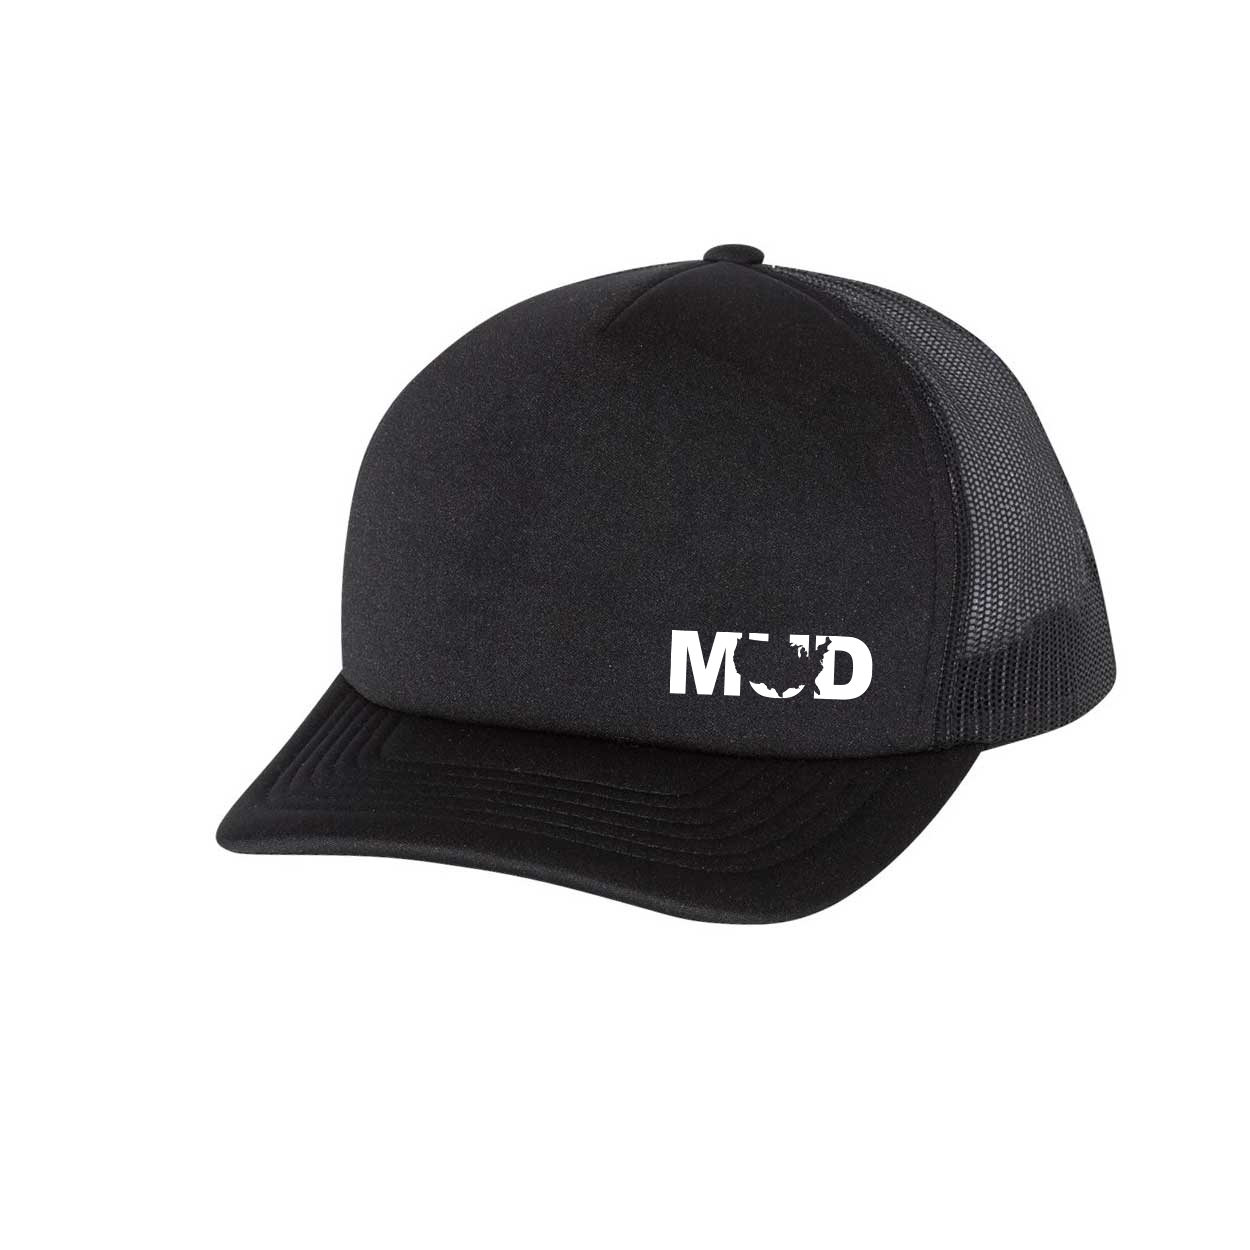 Mud United States Night Out Premium Foam Trucker Snapback Hat Black (White Logo)